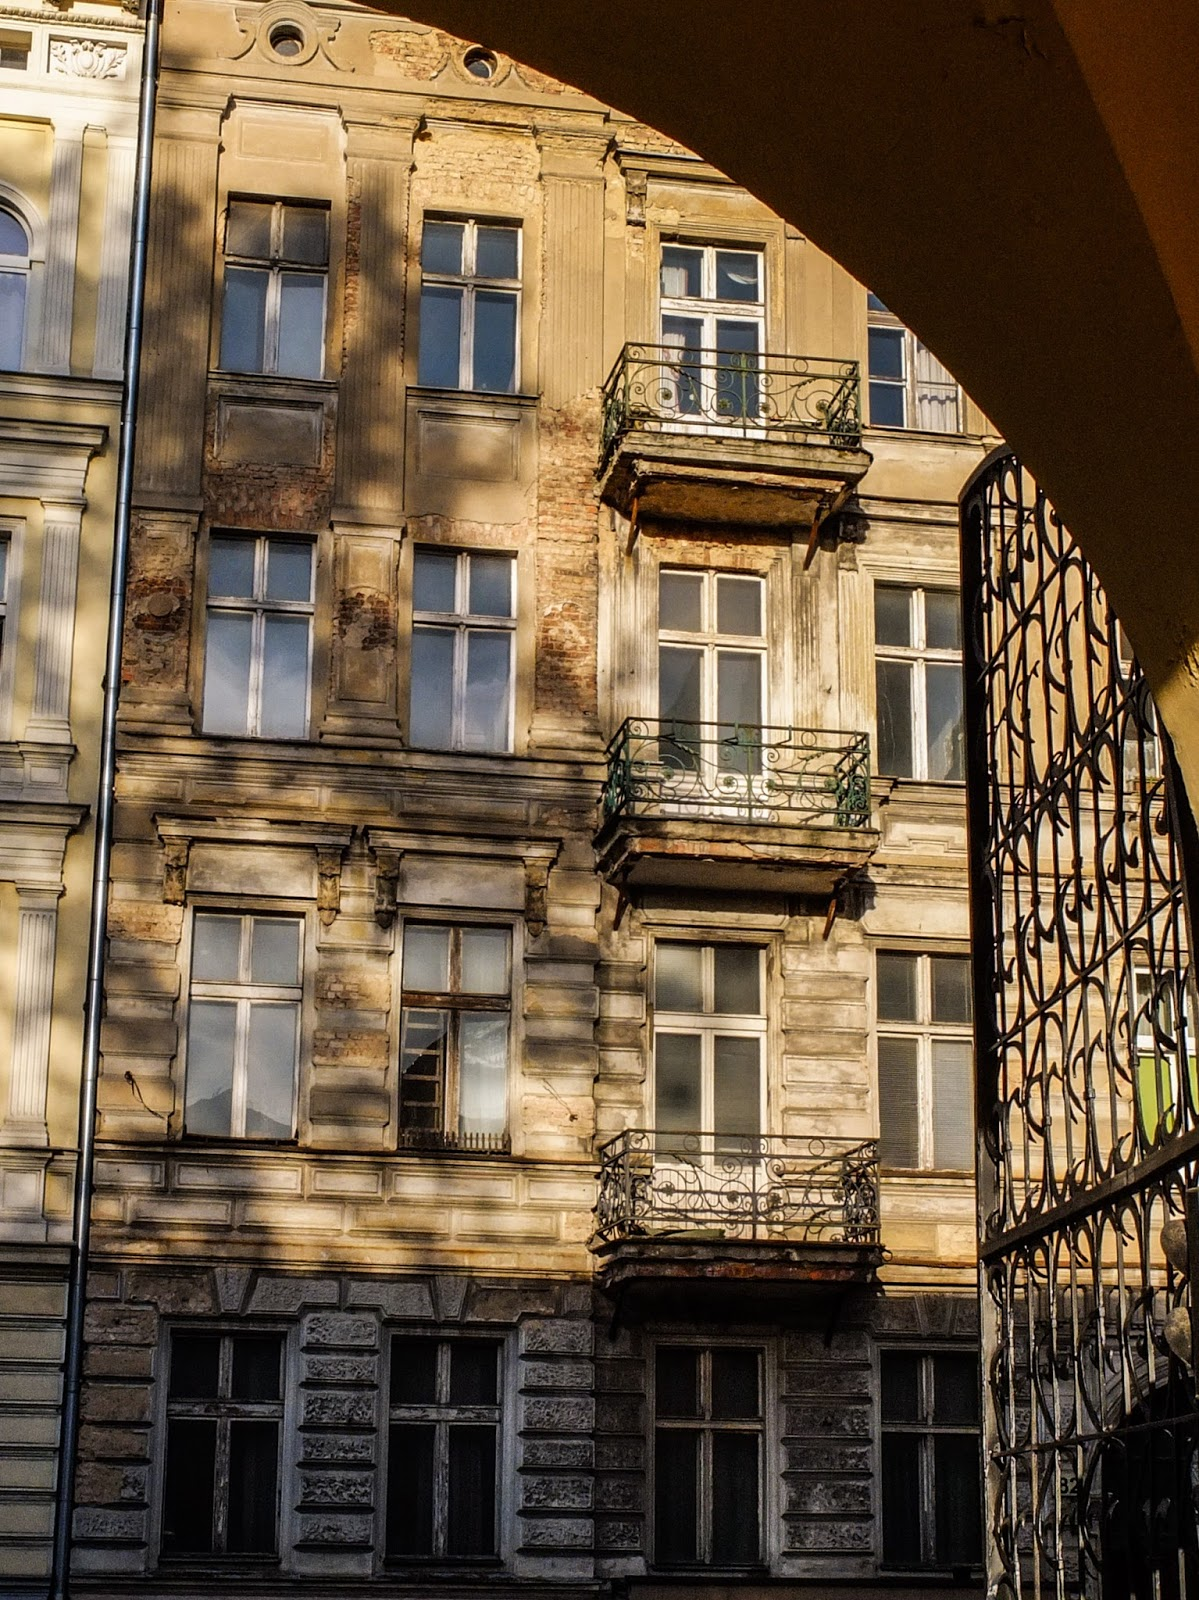 Sunlight on tenement houses in the city of Poznań, Poland.